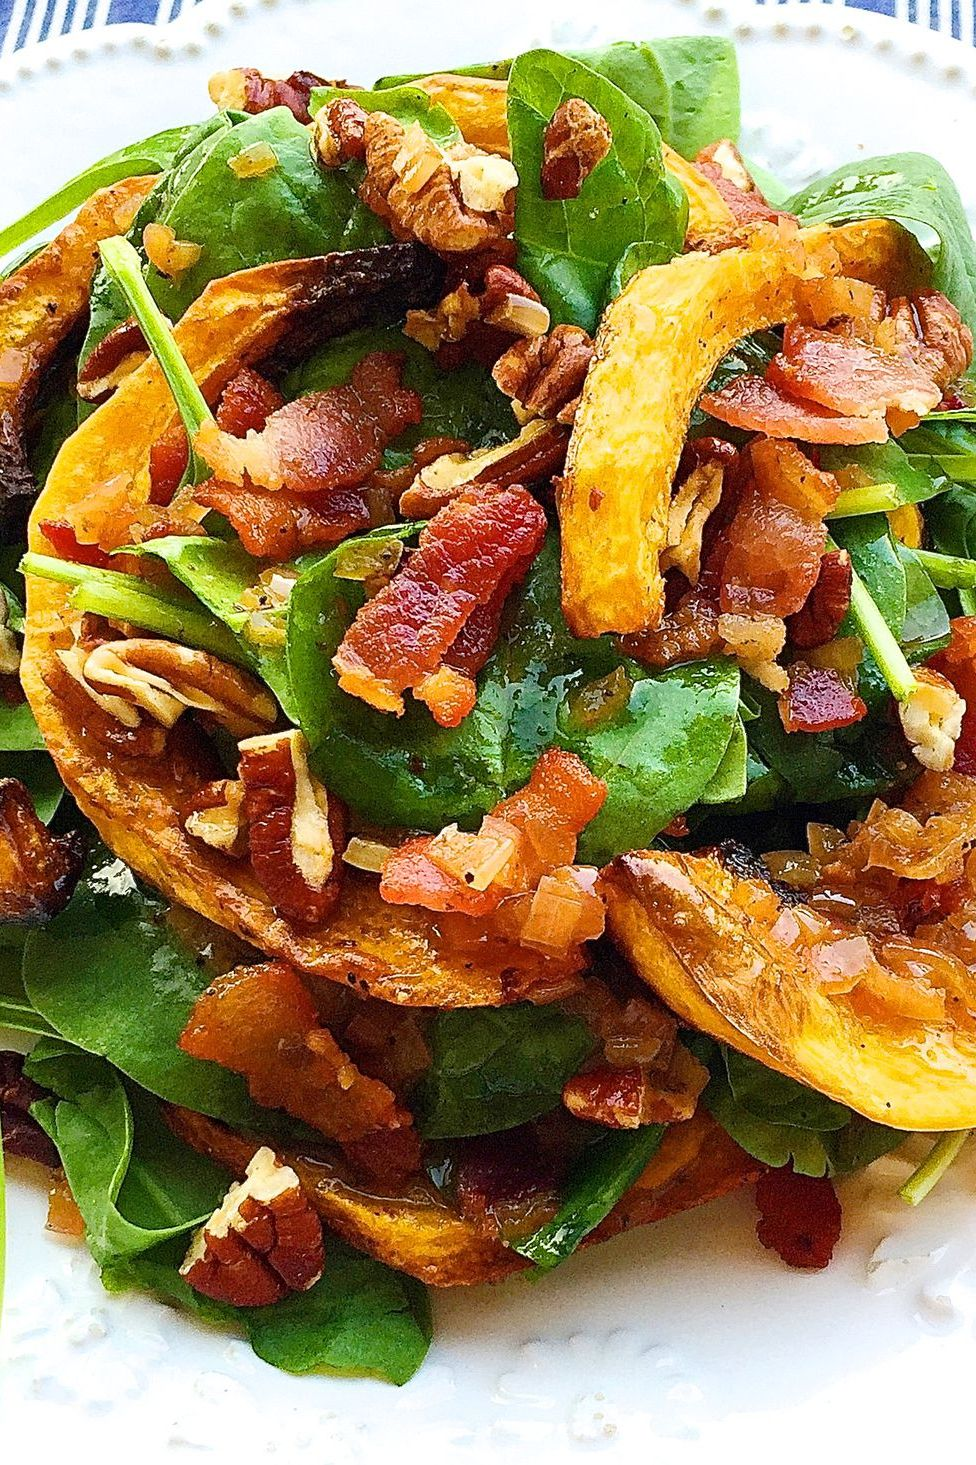 Crispy Butternut Squash Spinach Salad with Bacon-Shallot Vinaigrette vegetable side dish recipe